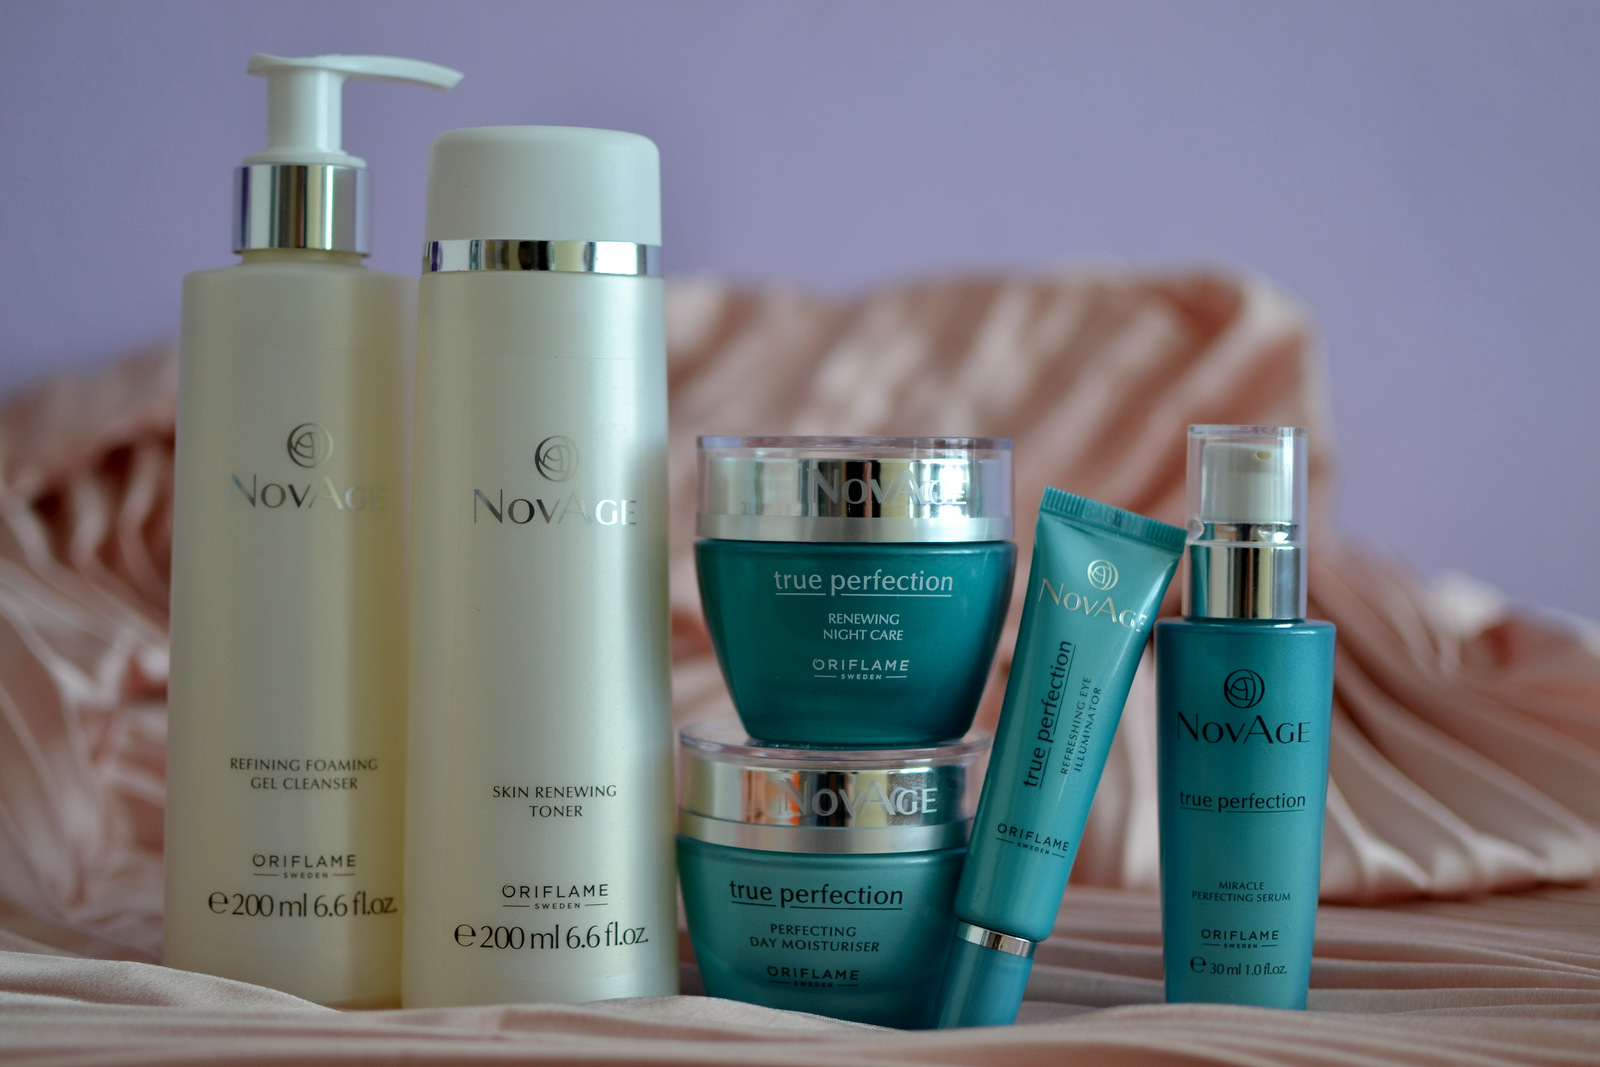 novage_oriflame_true_perfection